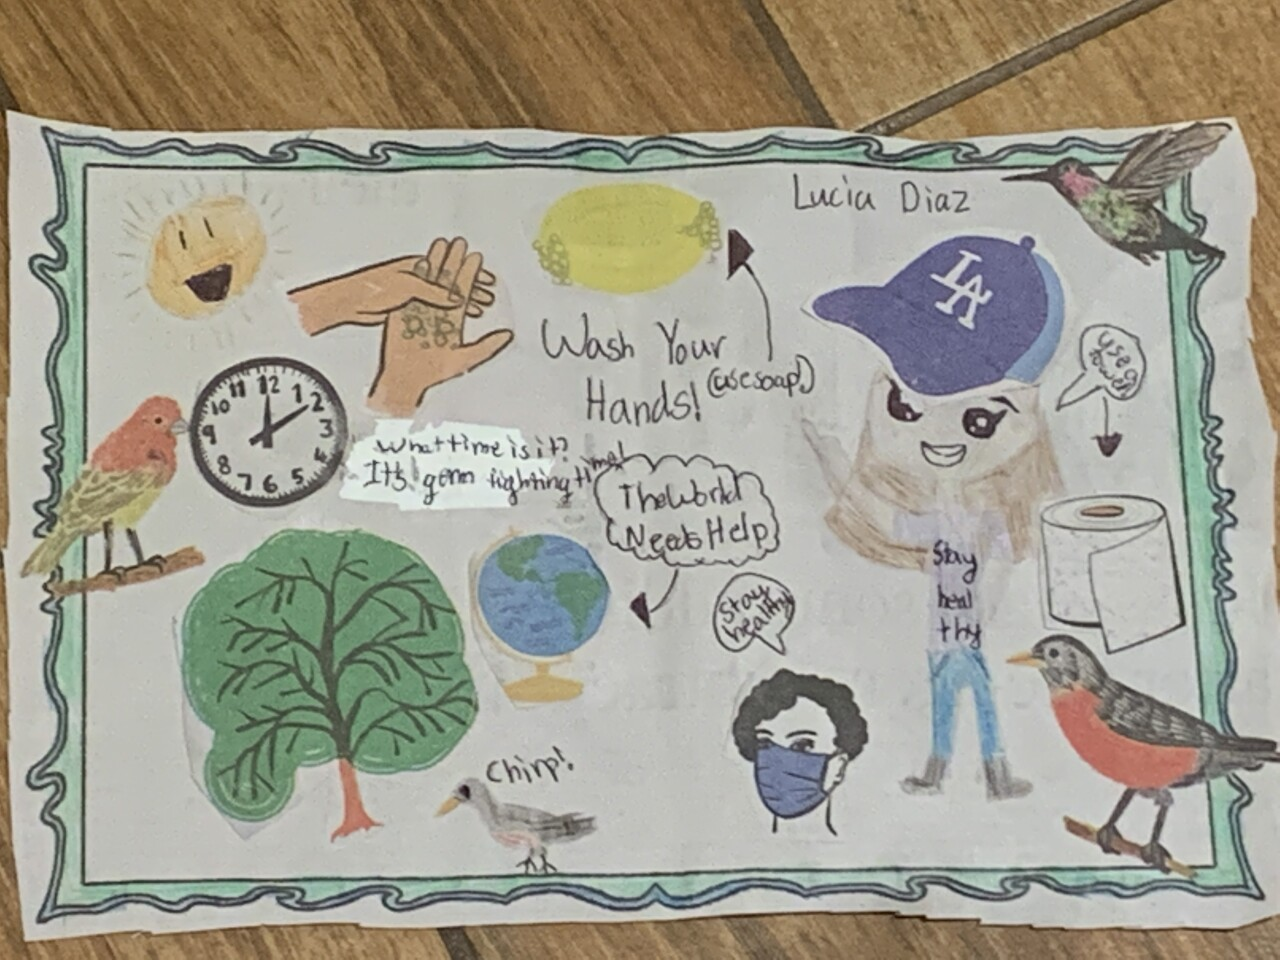 """Lucia Diaz, age 8, from Downey, submitted a drawing to jotform.com, """"I drew a tree with a robin next to it, and two hands with soap that say, """"wash you're hands!"""" And a girl with a towel saying, """" use a towel!"""", and a nurse saying,""""stay healthy"""", and a clock saying,"""" what time is it? It's germ fighting time!"""" a sun, and a globe that says,"""" the world needs help."""" Credit: Lucia Diaz"""